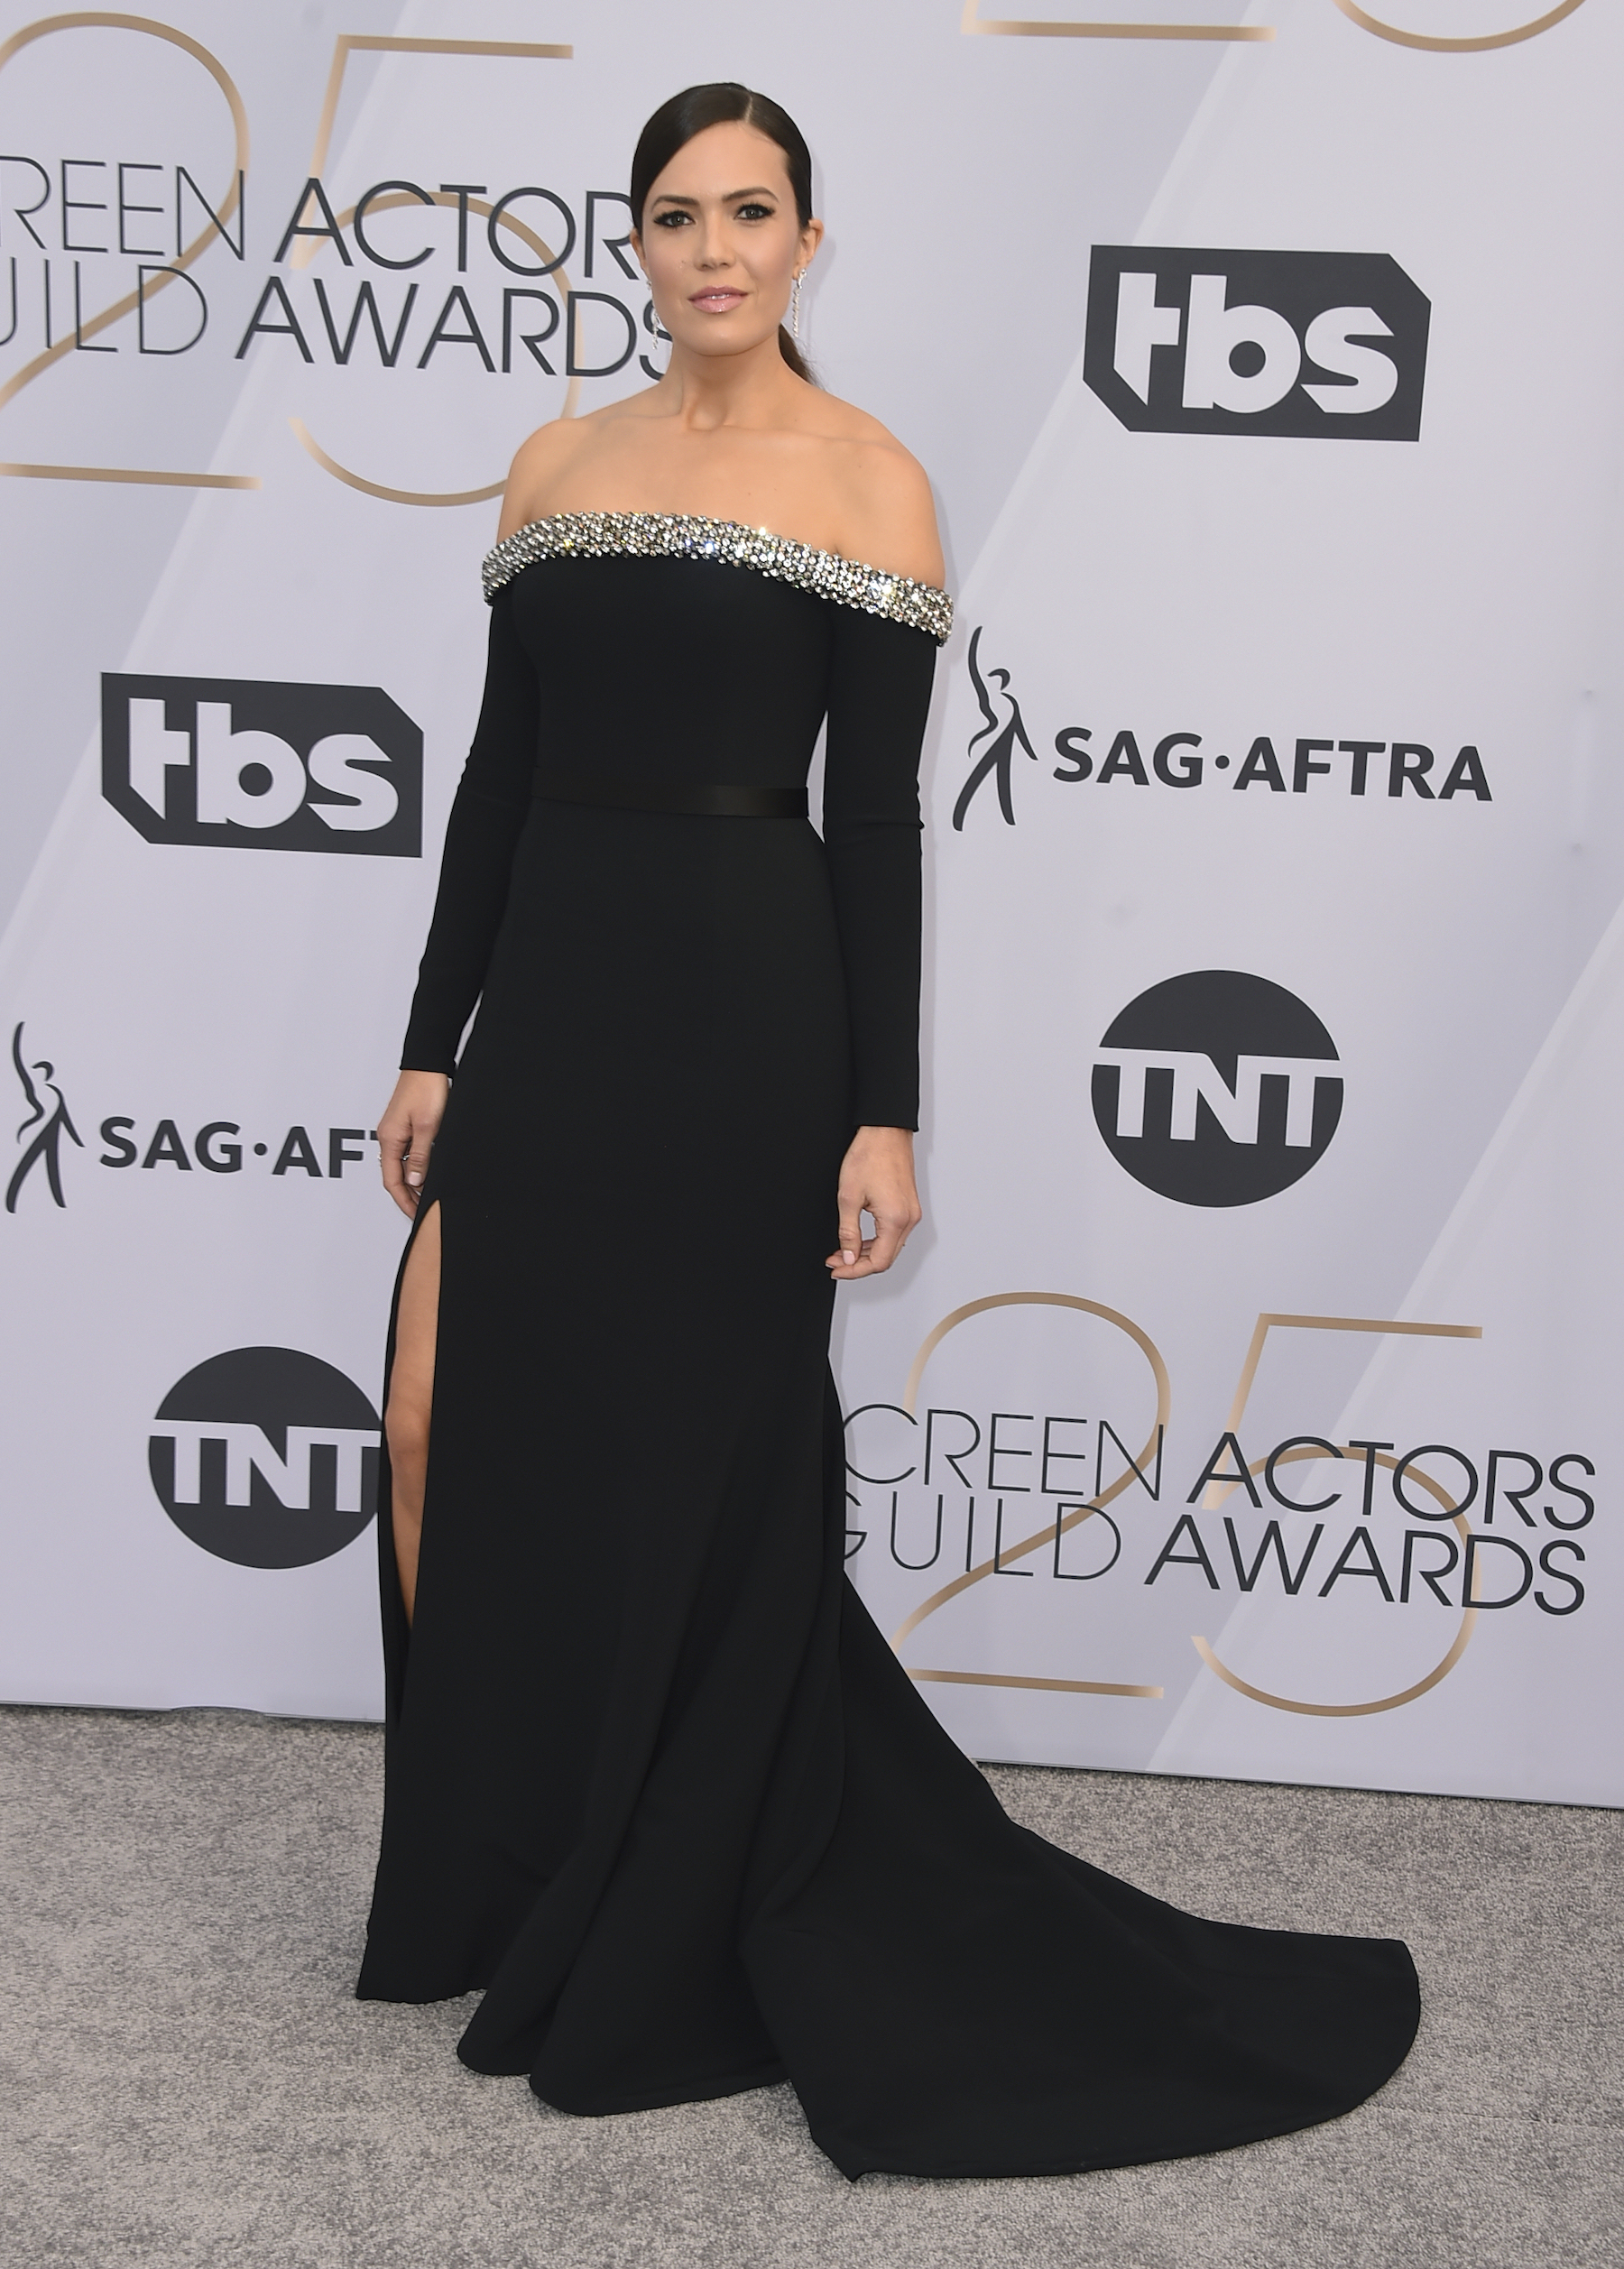 <div class='meta'><div class='origin-logo' data-origin='AP'></div><span class='caption-text' data-credit='Jordan Strauss/Invision/AP'>Mandy Moore arrives at the 25th annual Screen Actors Guild Awards at the Shrine Auditorium & Expo Hall on Sunday, Jan. 27, 2019, in Los Angeles.</span></div>